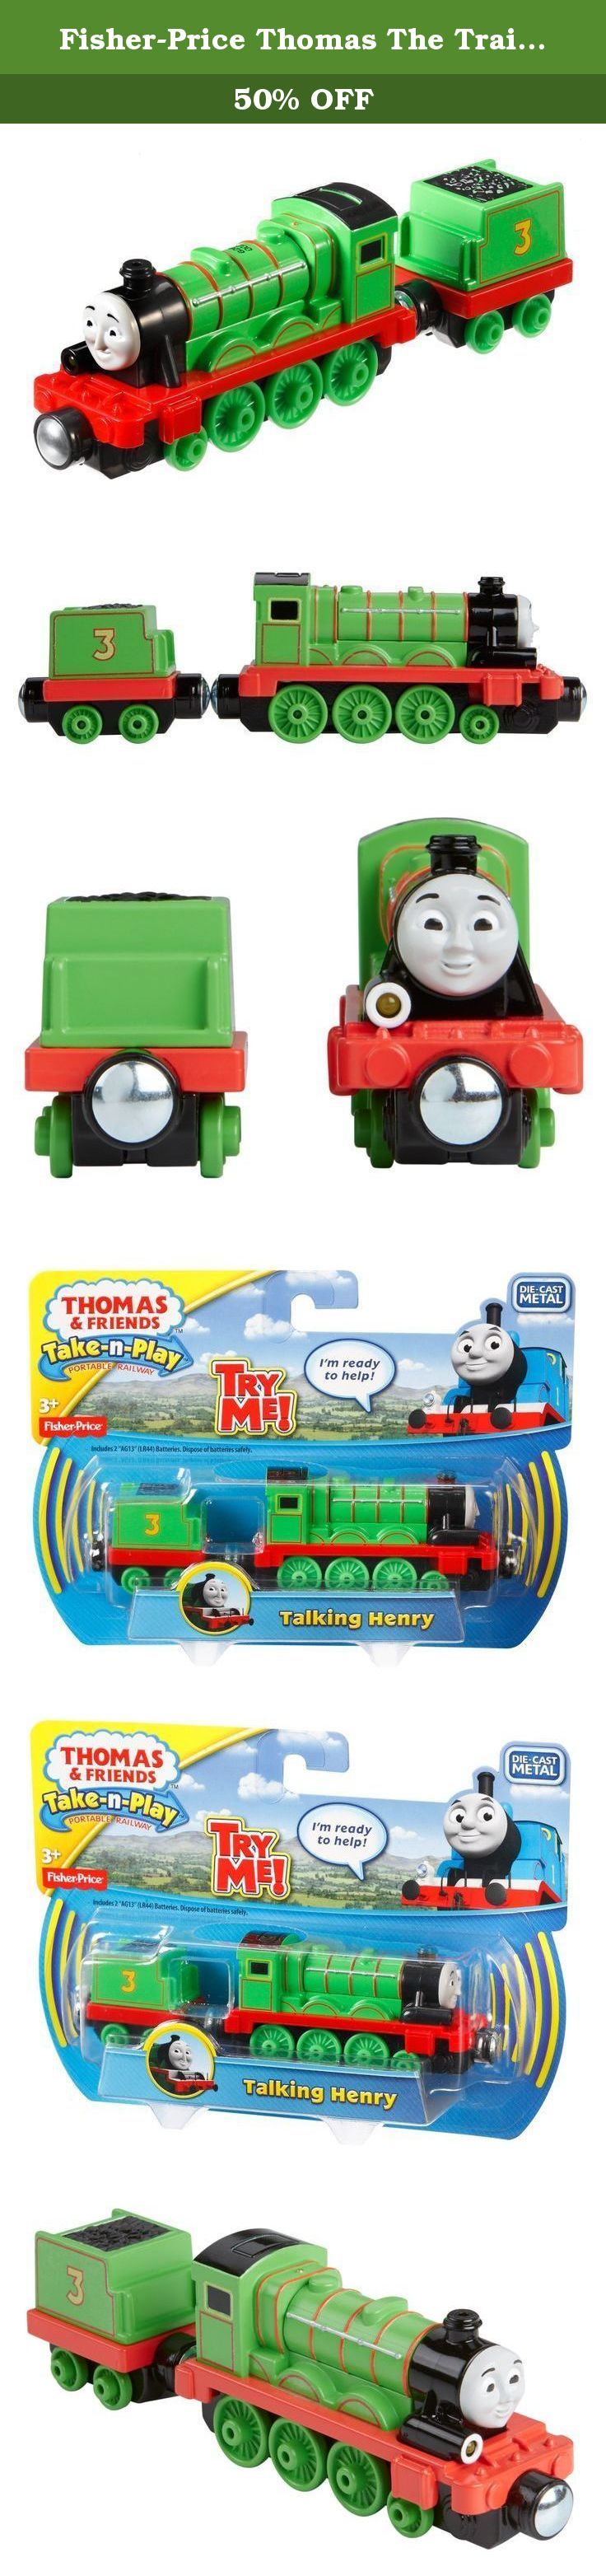 "Fisher-Price Thomas The Train Take-N-Play Talking Henry. Henry comes to life as a die-cast metal train engine with phrases, whistles and fun engine sounds! Henry features a working light. Press the button to hear Henry's signature phrases in his very own voice! Perfect for Take-n-Play Portable Fold-Out Playsets (sold separately and subject to availability). Requires 2 ""AG13"" (LR44) batteries. Ages 3+."